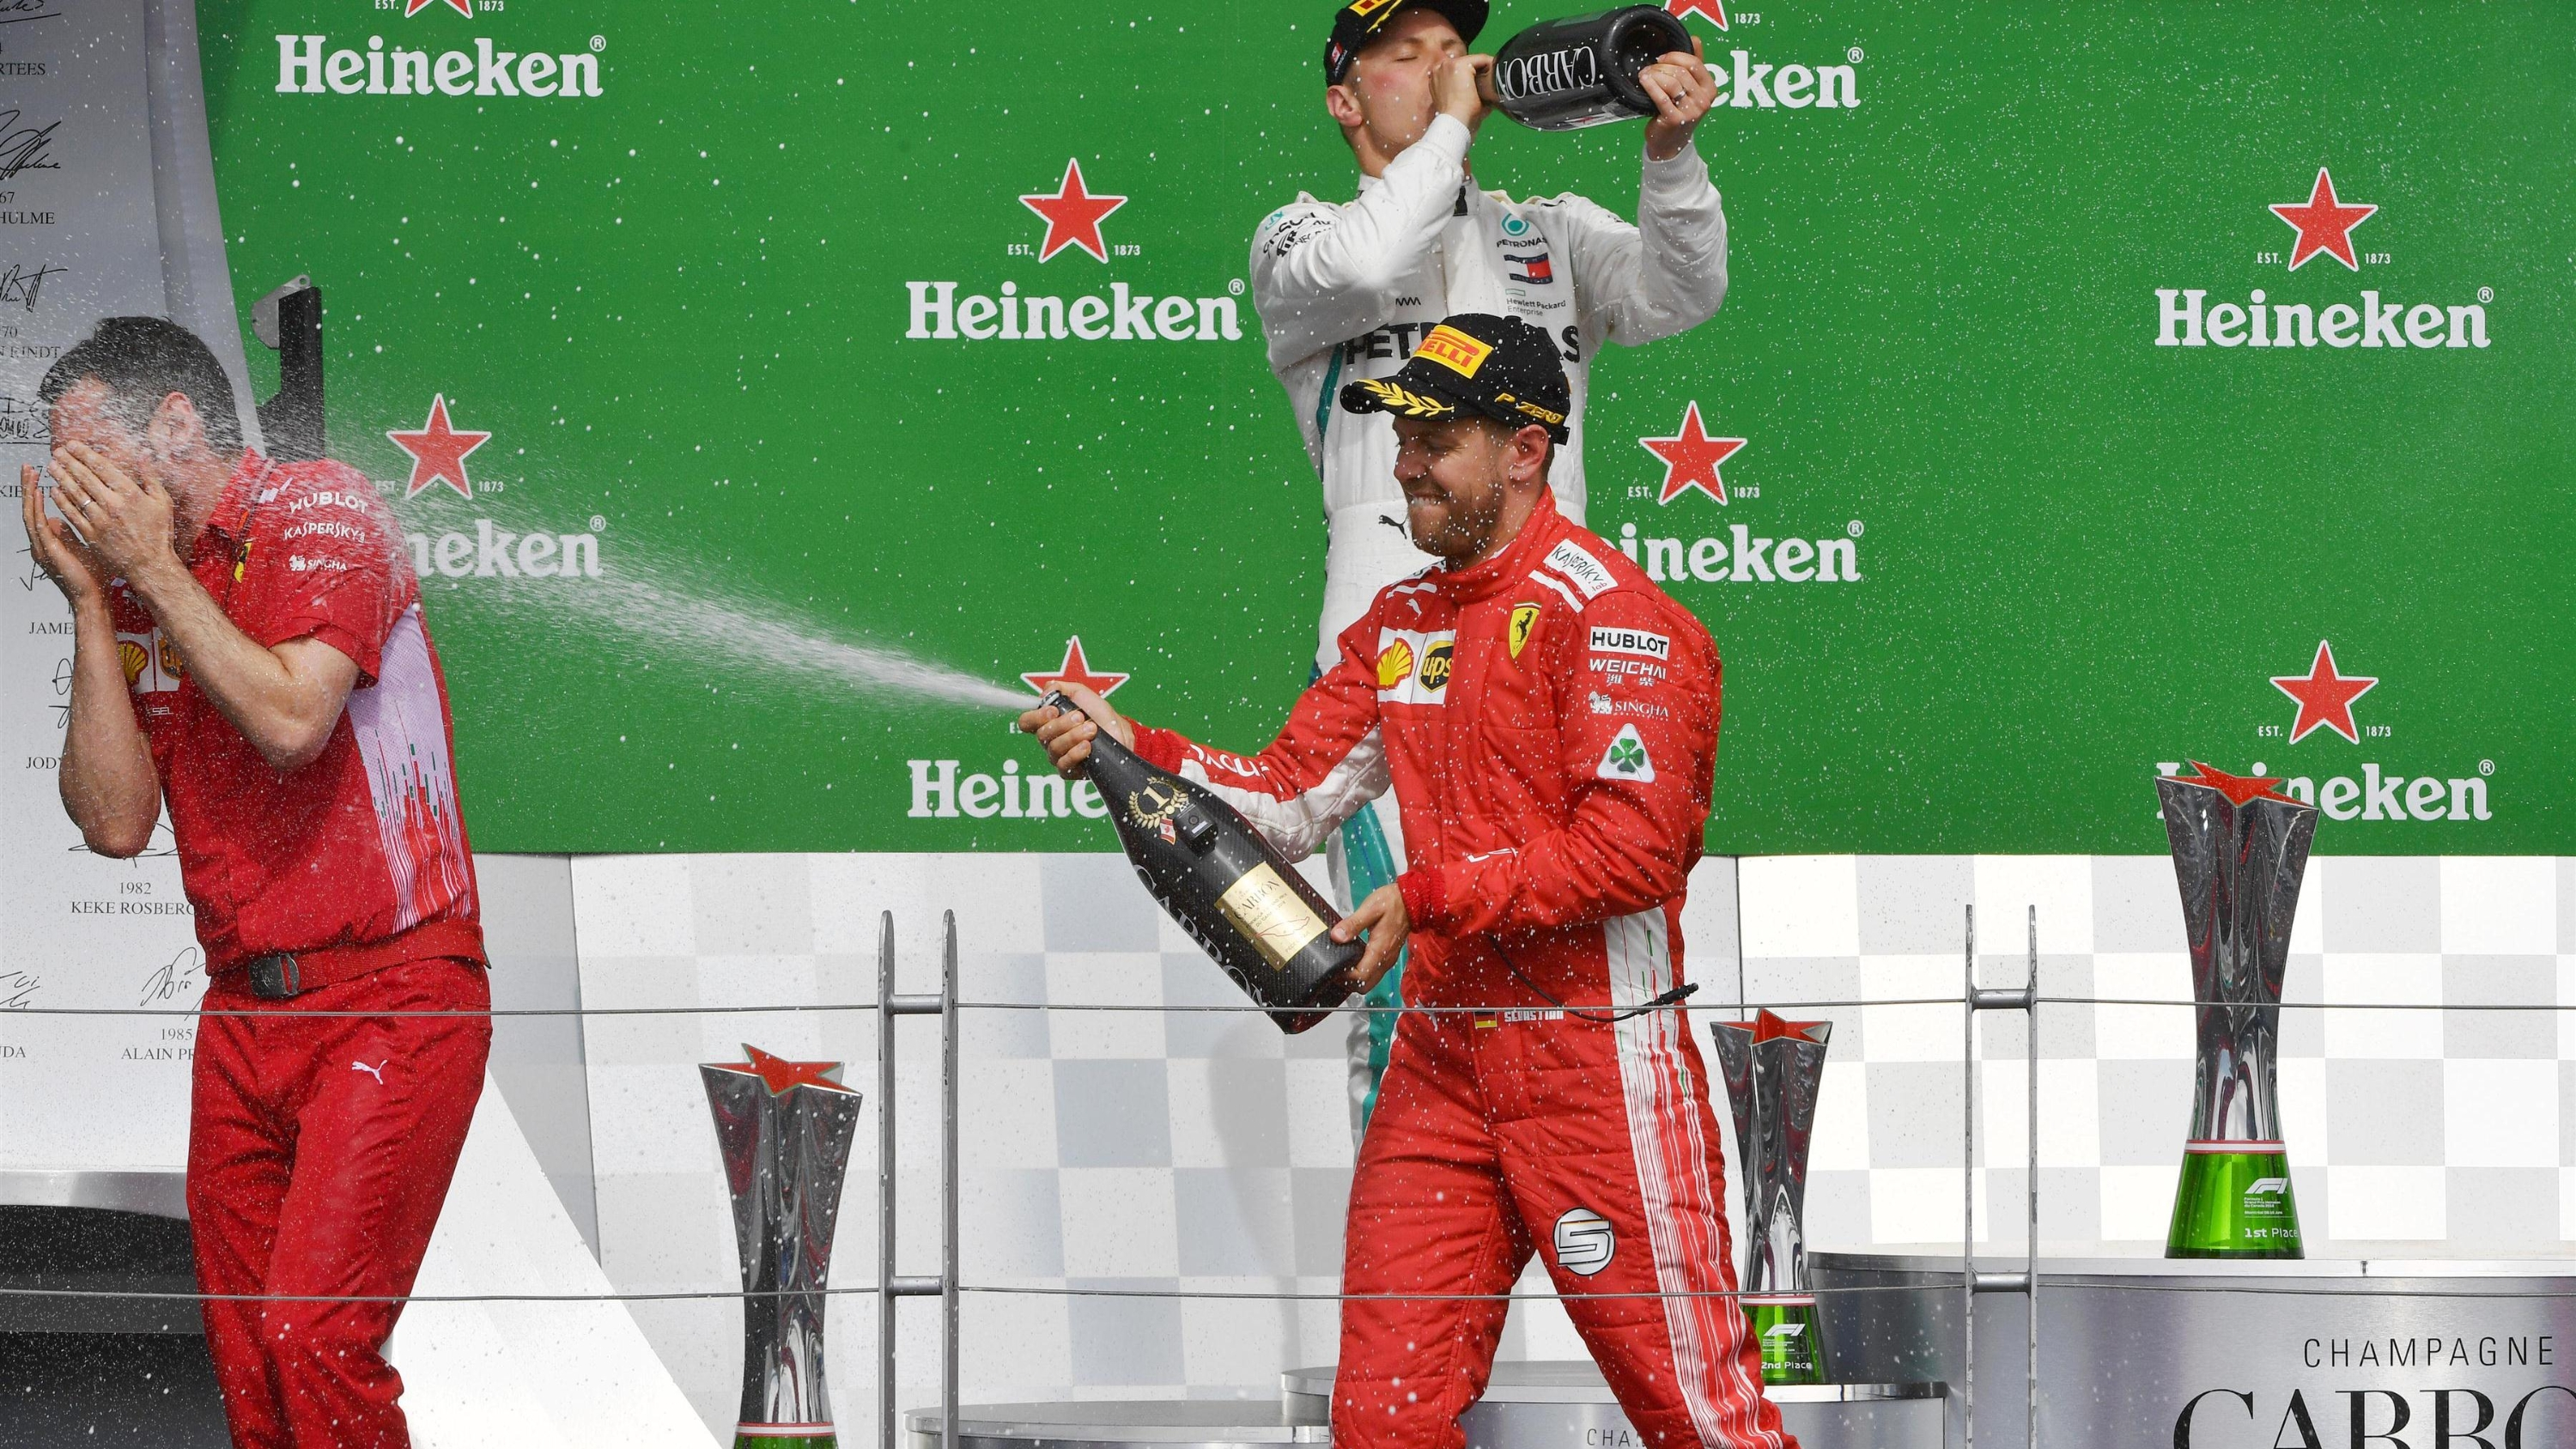 Hamilton secures pole position in France